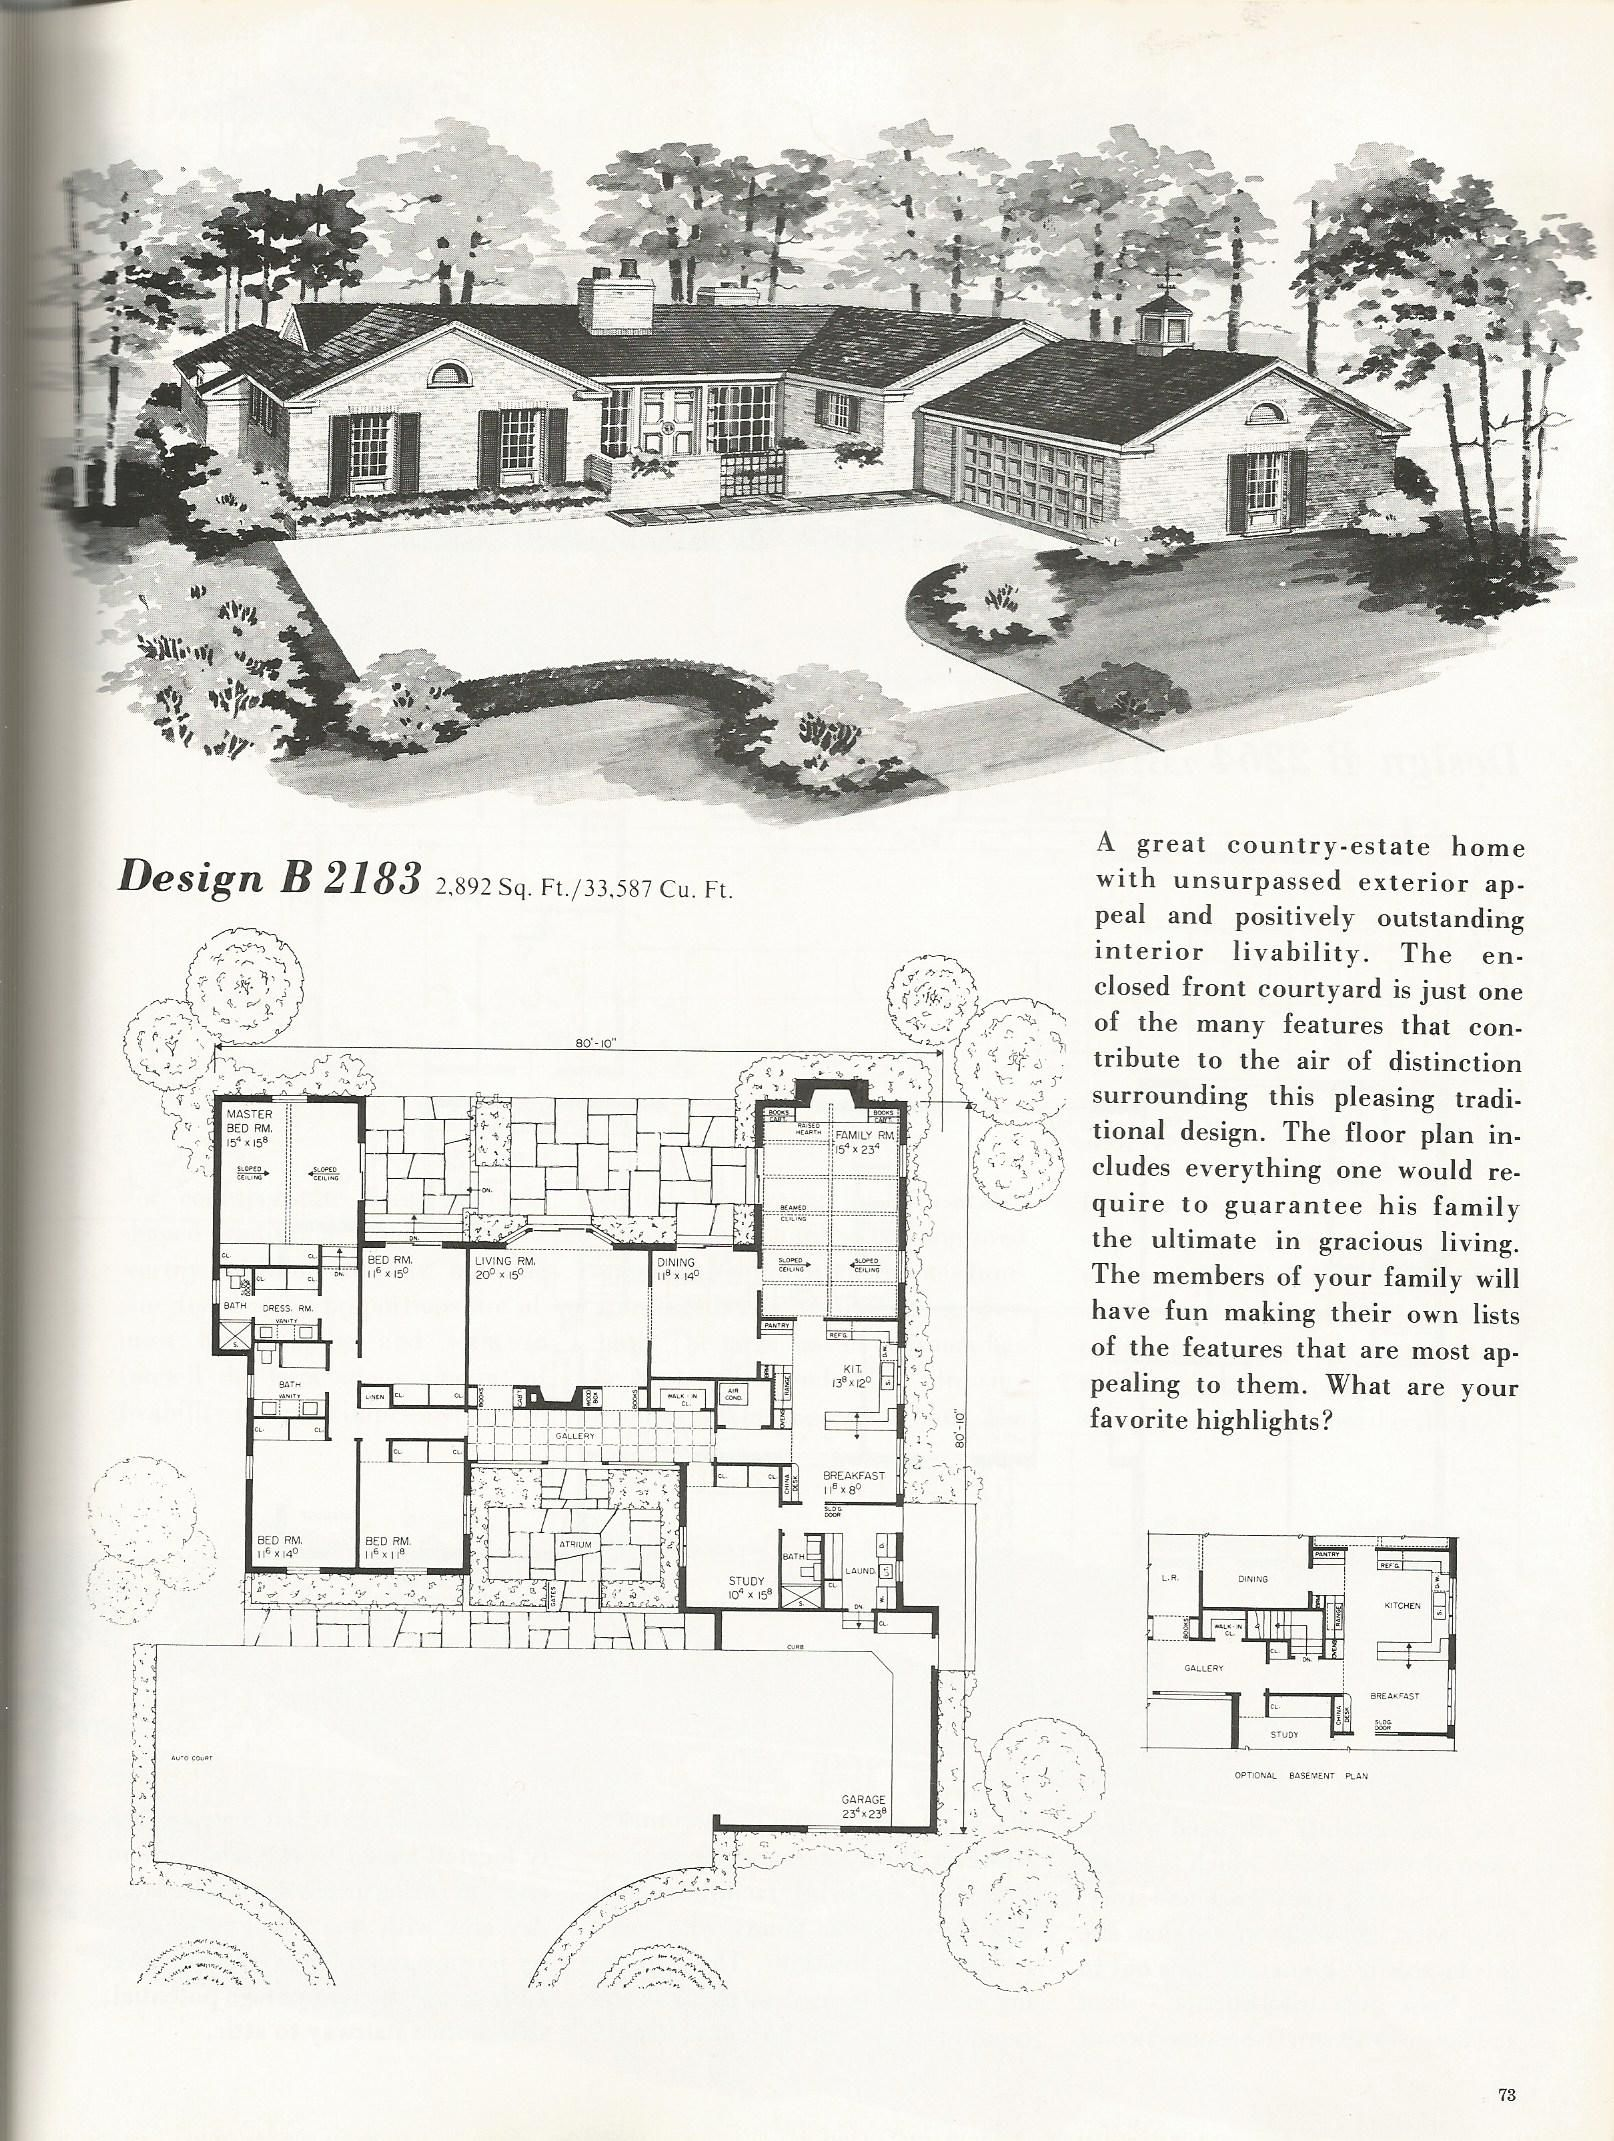 b16e793d010fa16e09d43b96c5eee7fe U Shaped House Plans Mid Century Modern Ranch on cape cod ranch house plans, mid century ranch doors, mid century ranch exteriors, vintage ranch house plans, mid century atomic ranch, mid century ranch homes,